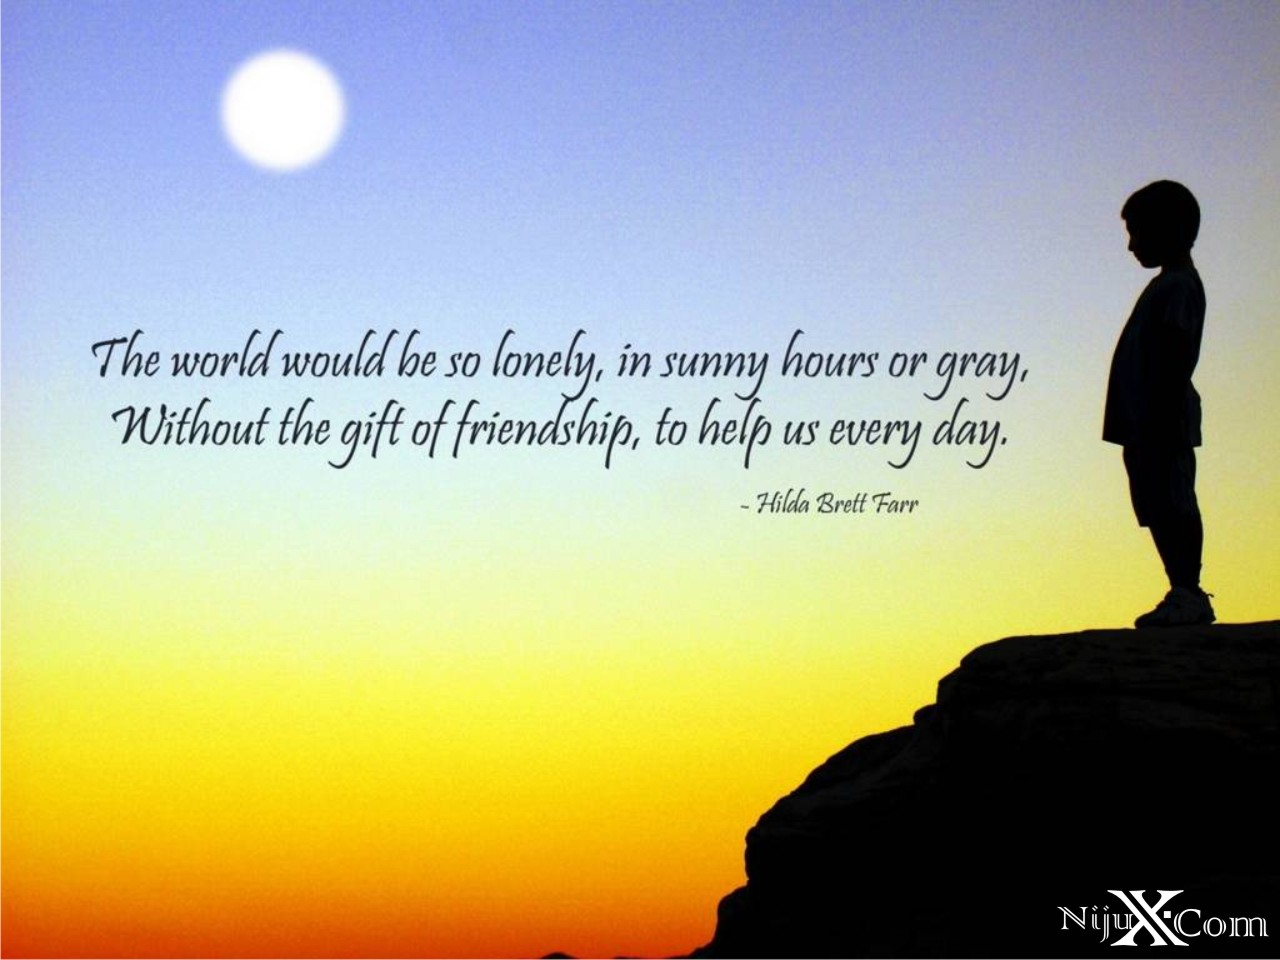 the world would be so lonely, in sunny hours or gray, without the gift to friendship, to help us every day. hilda brett farr